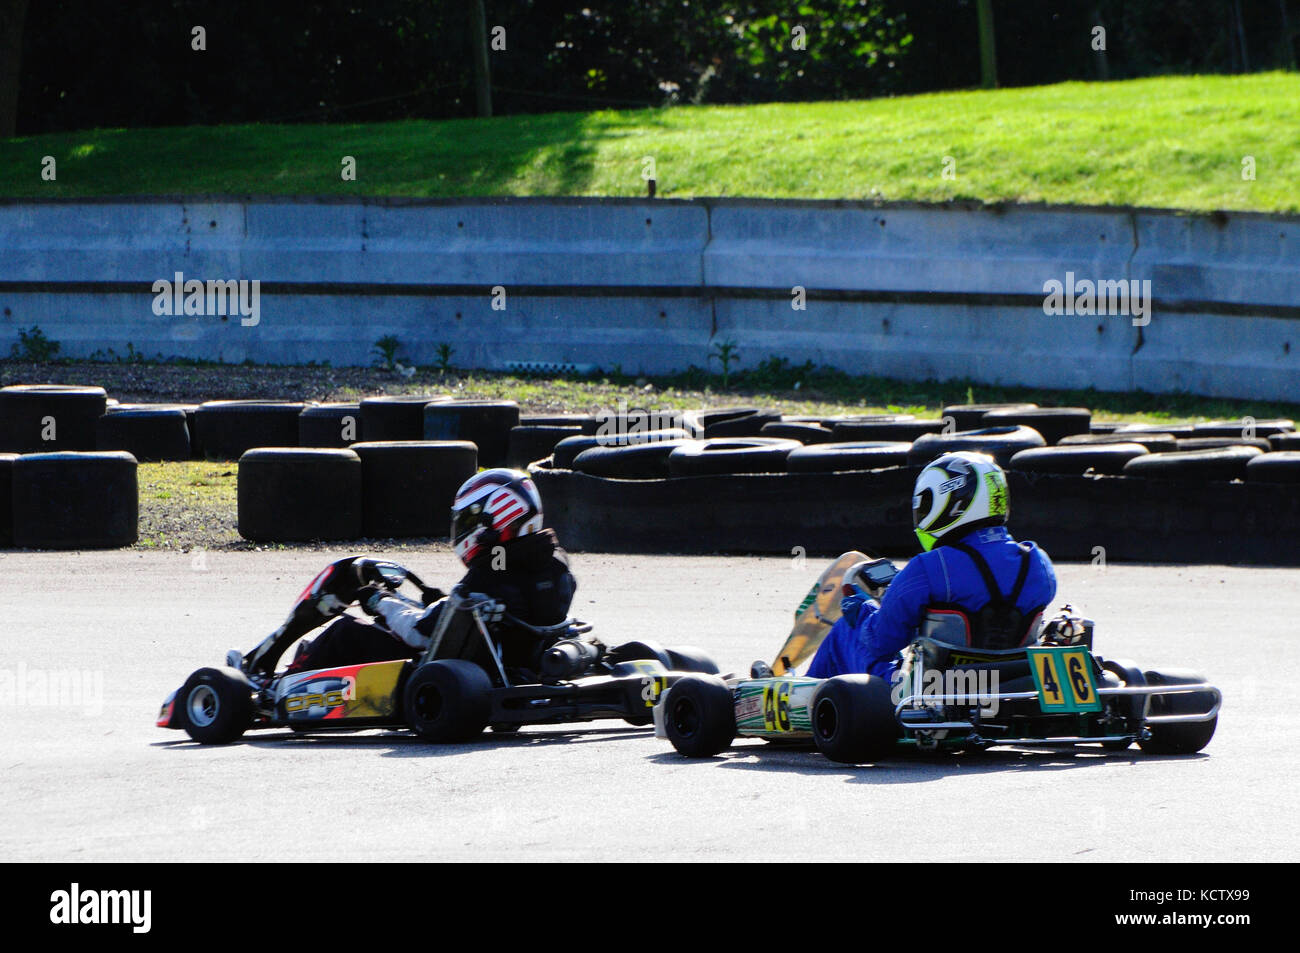 Go karting around a race track - Stock Image